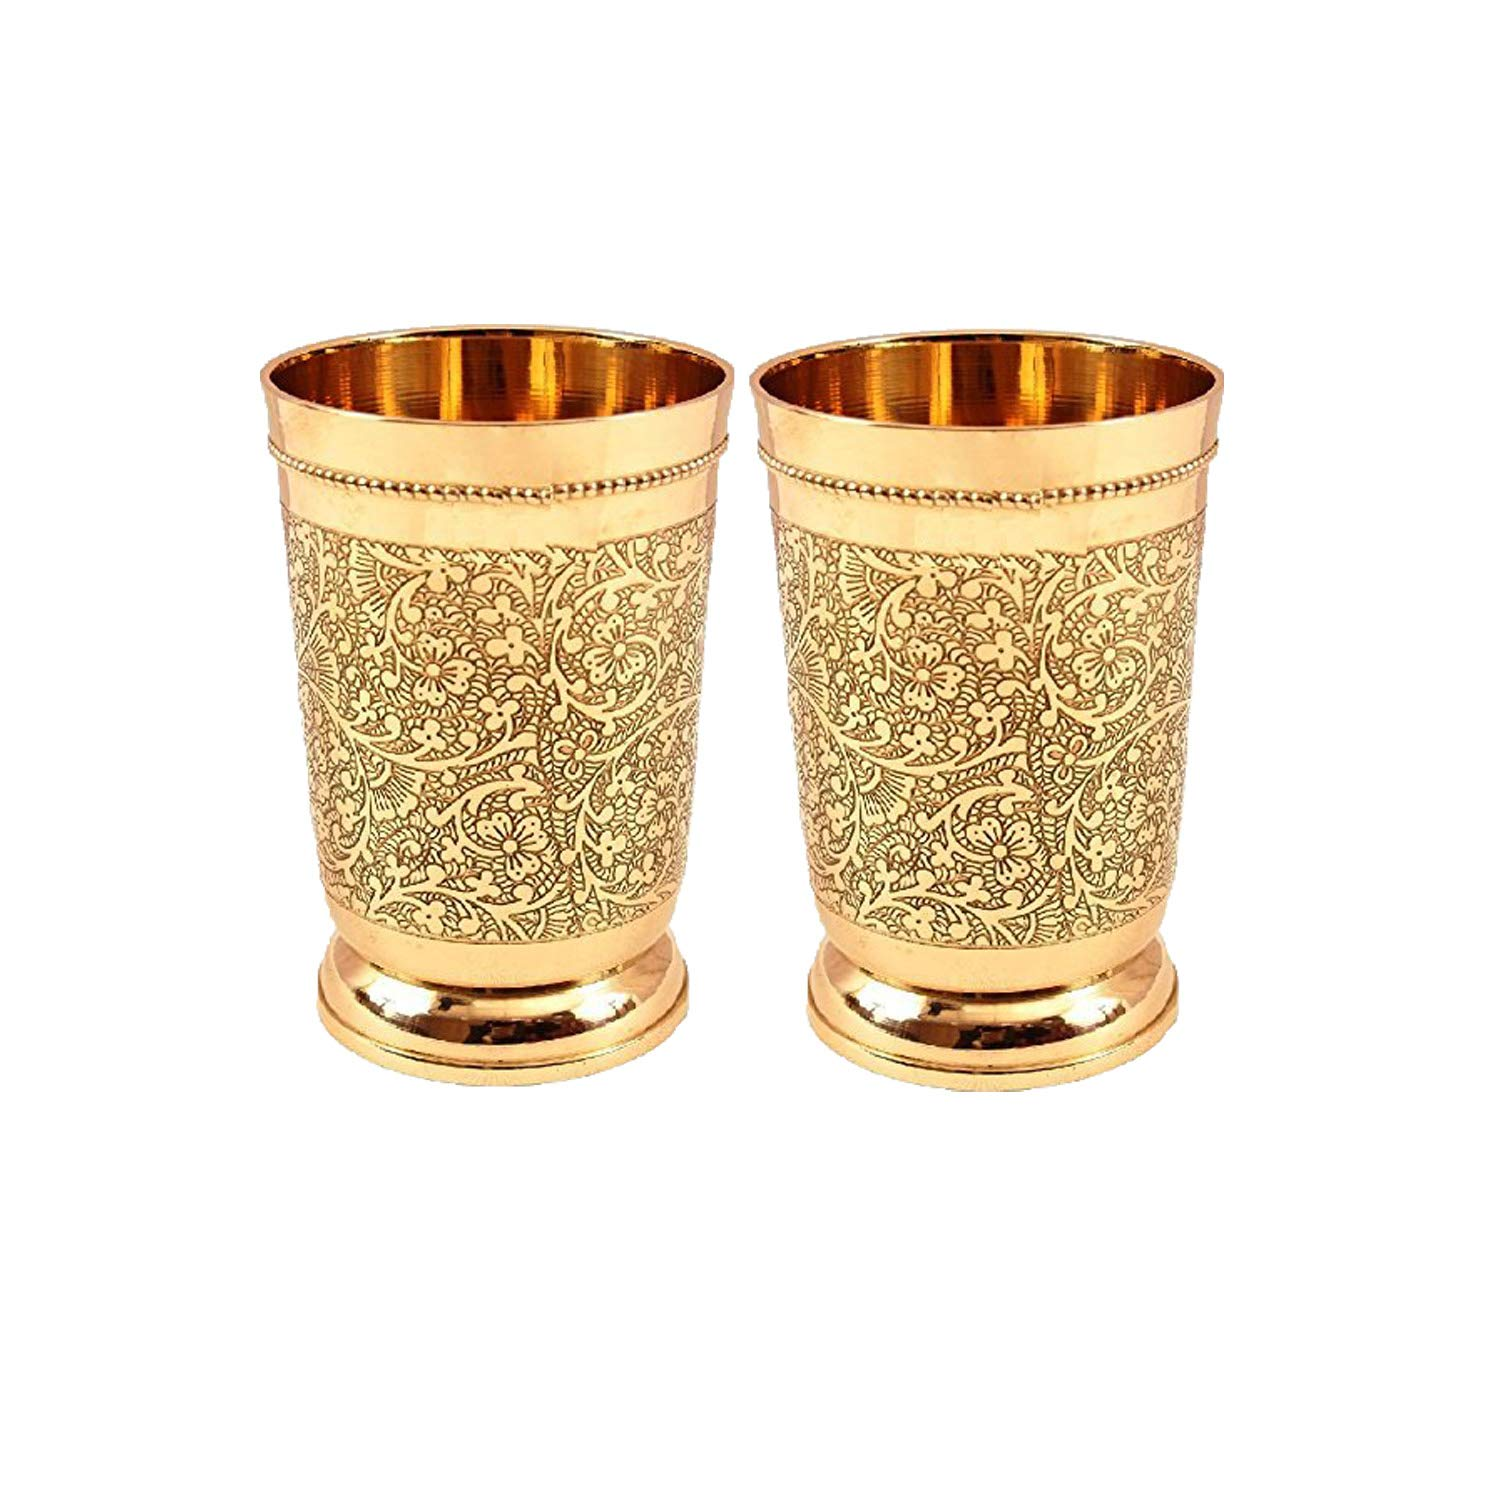 Set Of 2 Embossed Designer Brass Mint Julep Cup Goblet Tumbler Capacity 12 Ounce Each